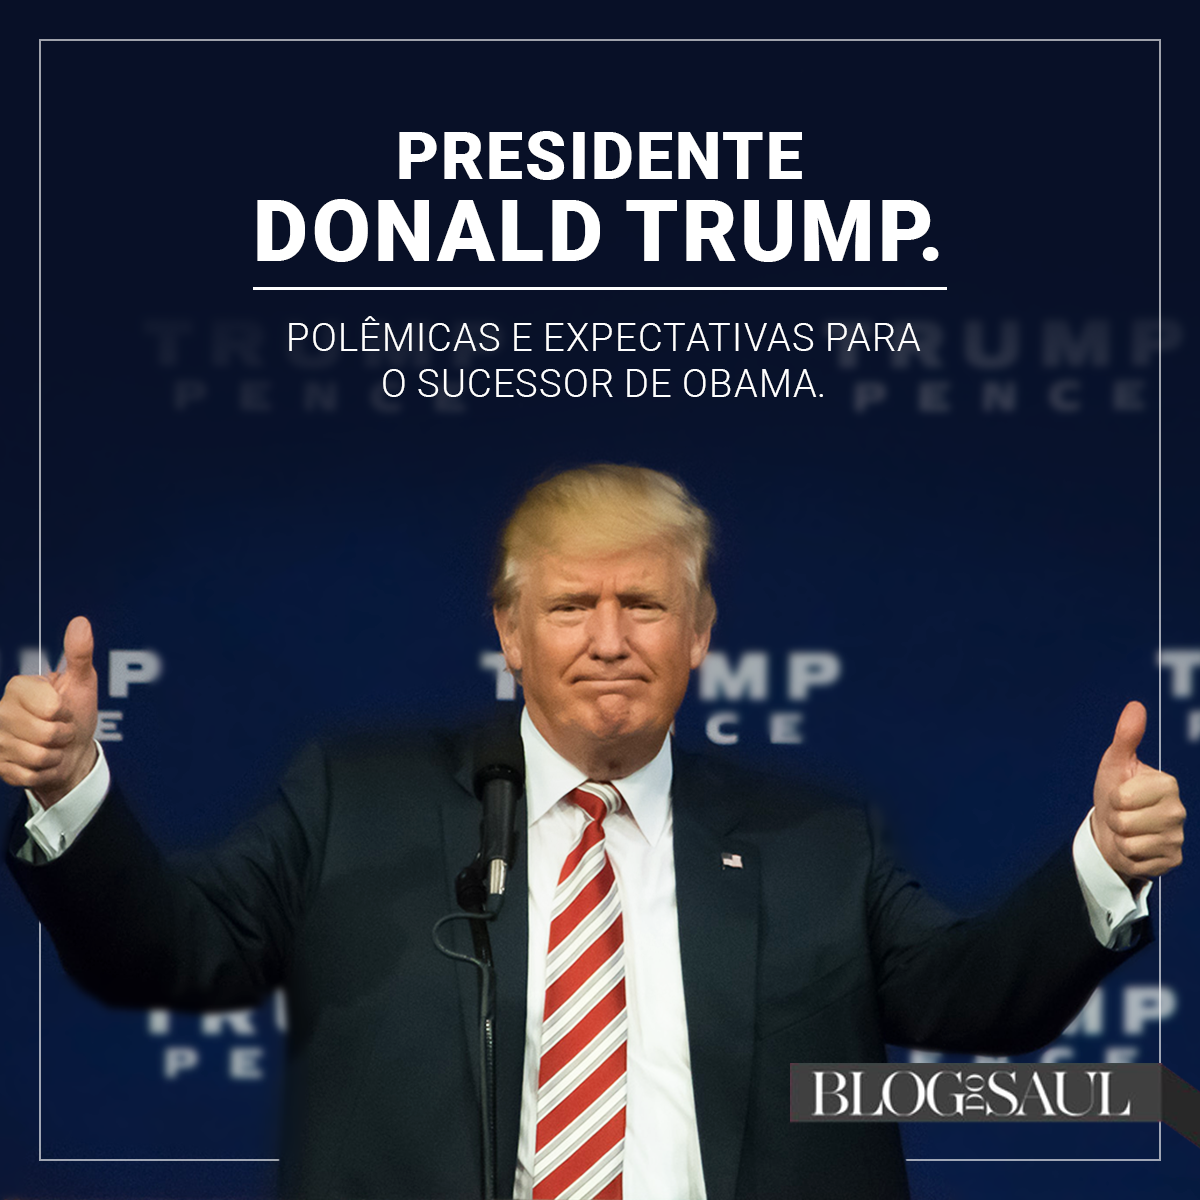 Presidente Donald Trump: polêmicas e expectativas para o sucessor do Obama